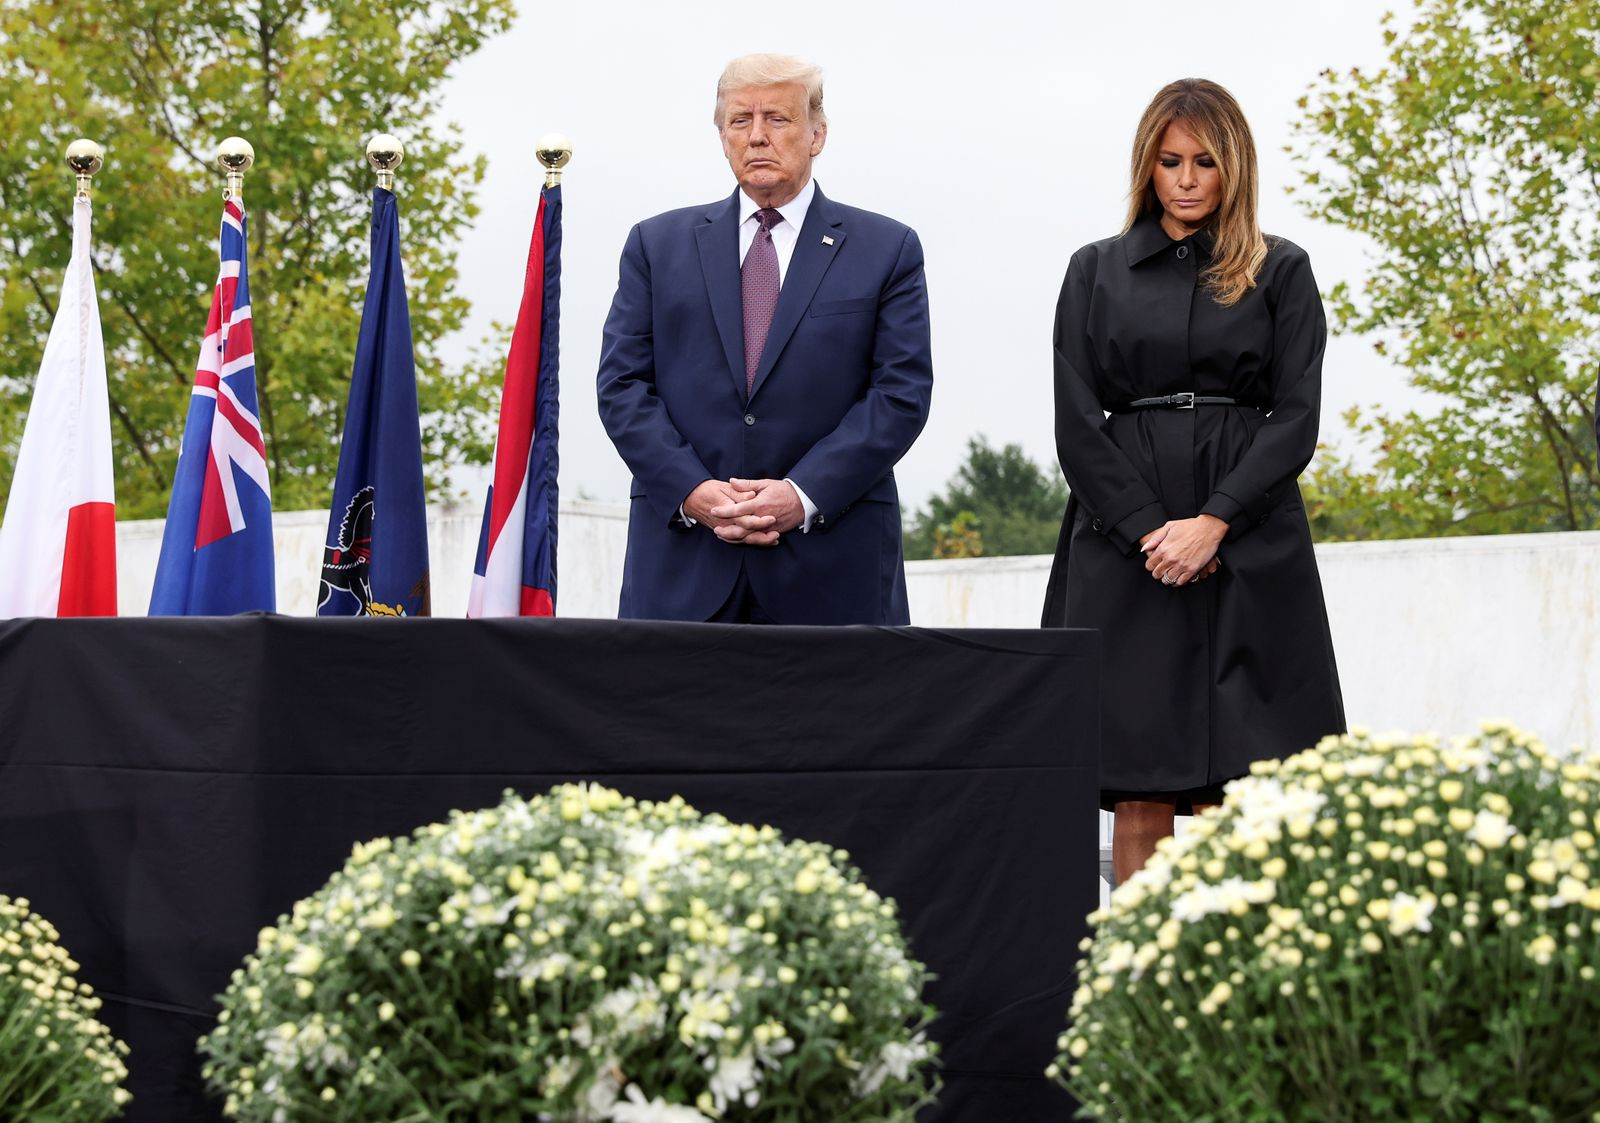 U.S. President Trump visits Flight 93 National Memorial during 19th annual September 11 observance in Stoystown, Pennsylvania